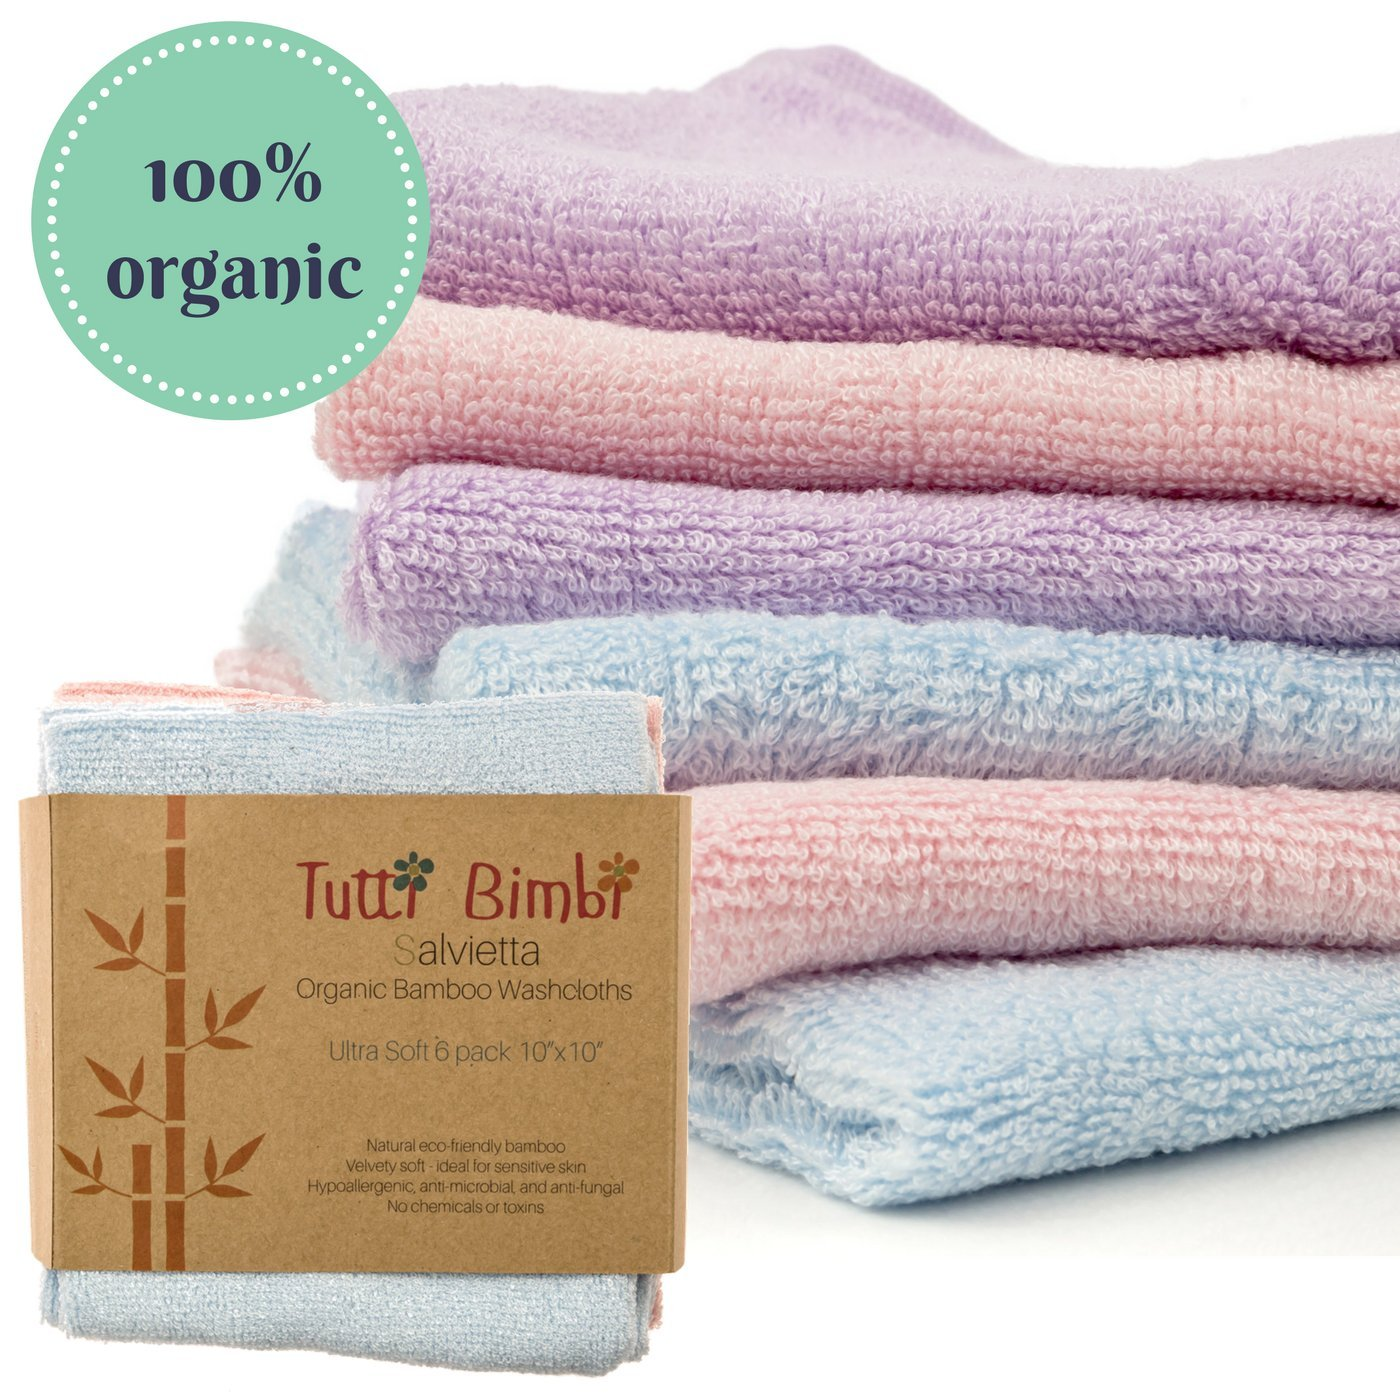 """Organic Bamboo Baby Washcloth Flannels ULTRA SOFT   6 Pack   Certified Organic - Best for Newborn Sensitive Skin, Eczema   Baby Travel Bathing Gift Kit   10"""" x 10"""" Large Extra-Thick Towels (512gsm)"""